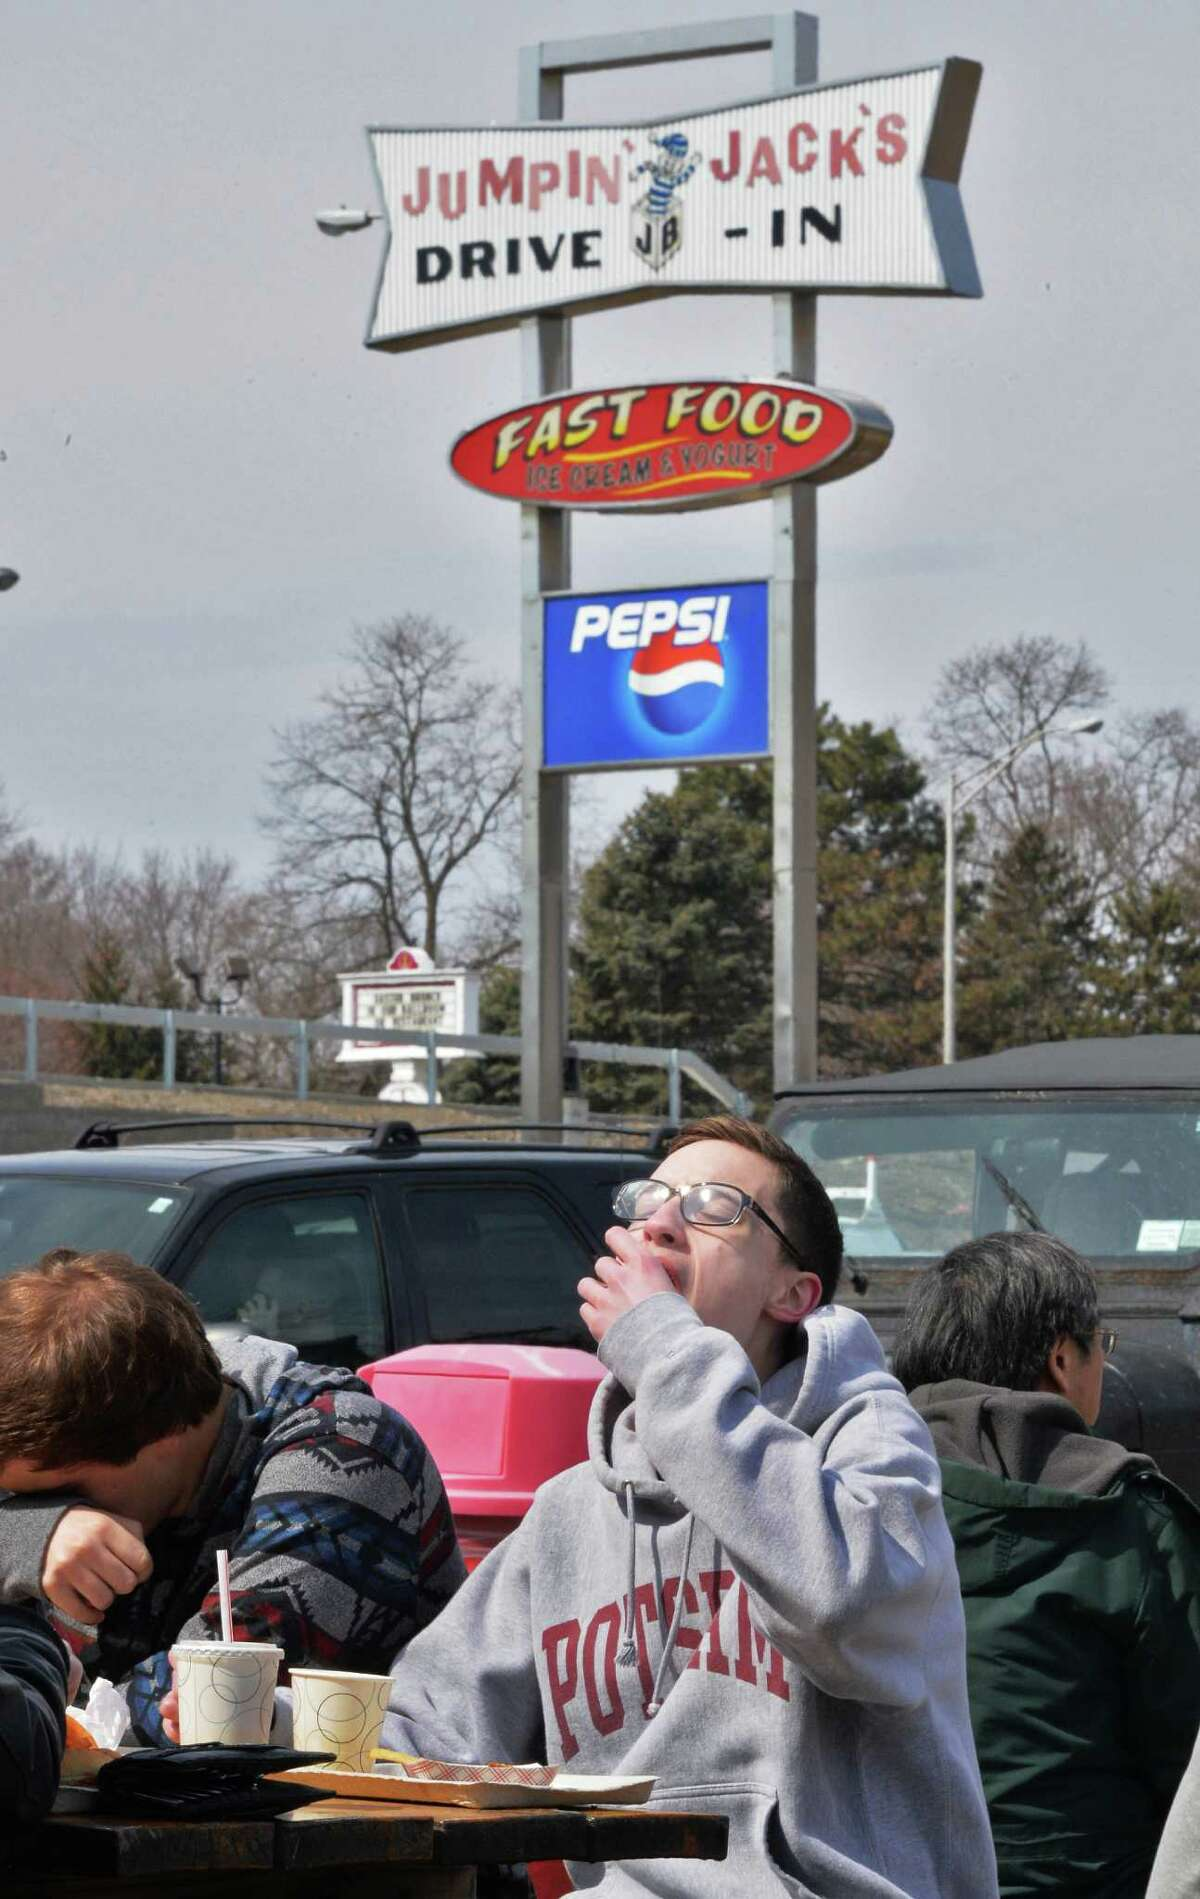 2. Jumpin' Jack's Drive-In , Scotia